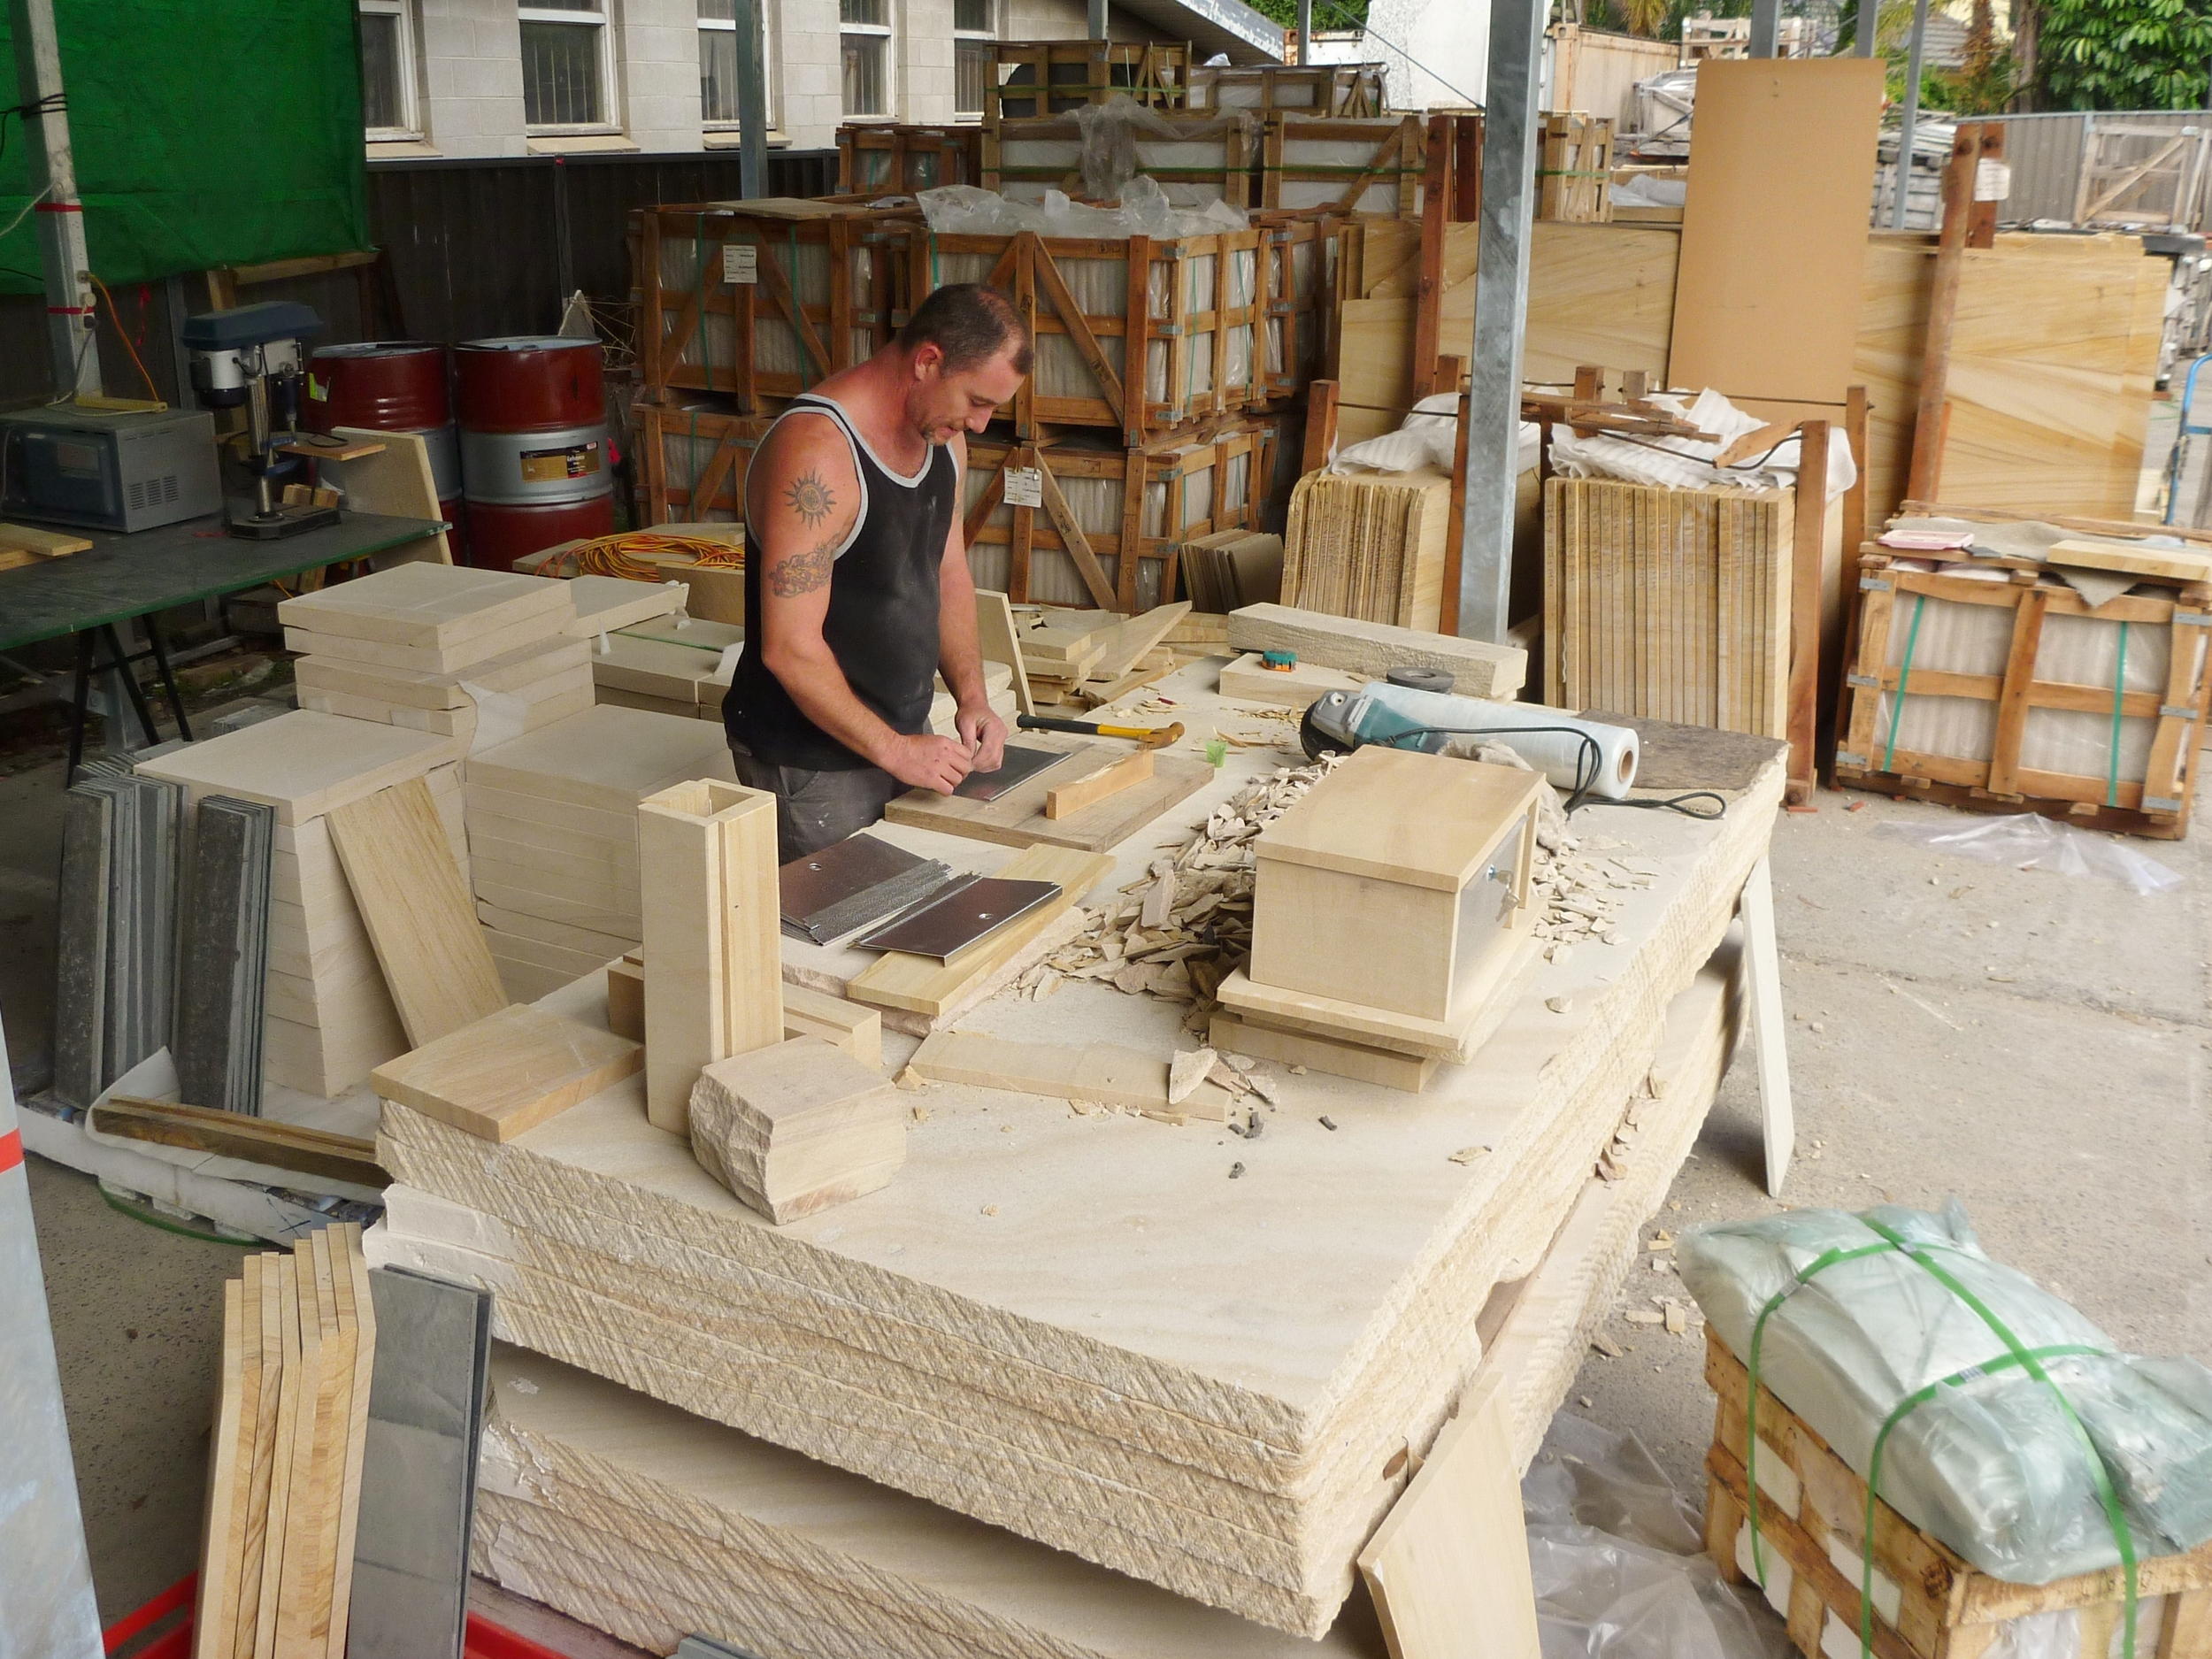 013 letterbox production in our stonemasonary.JPG